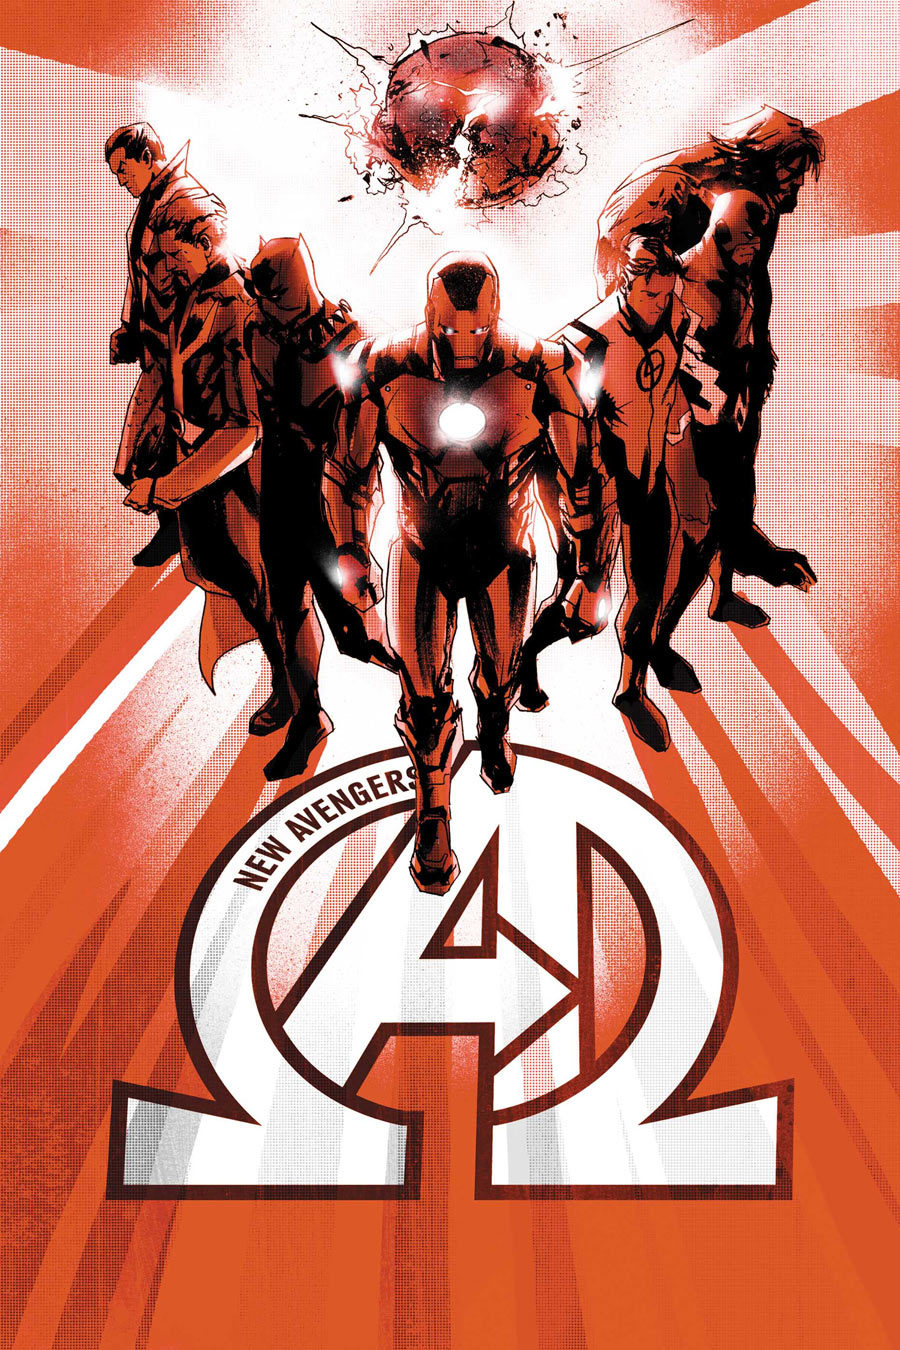 Marvel comics for 2013: this is the cover for New Avengers #6, drawn by Jock.